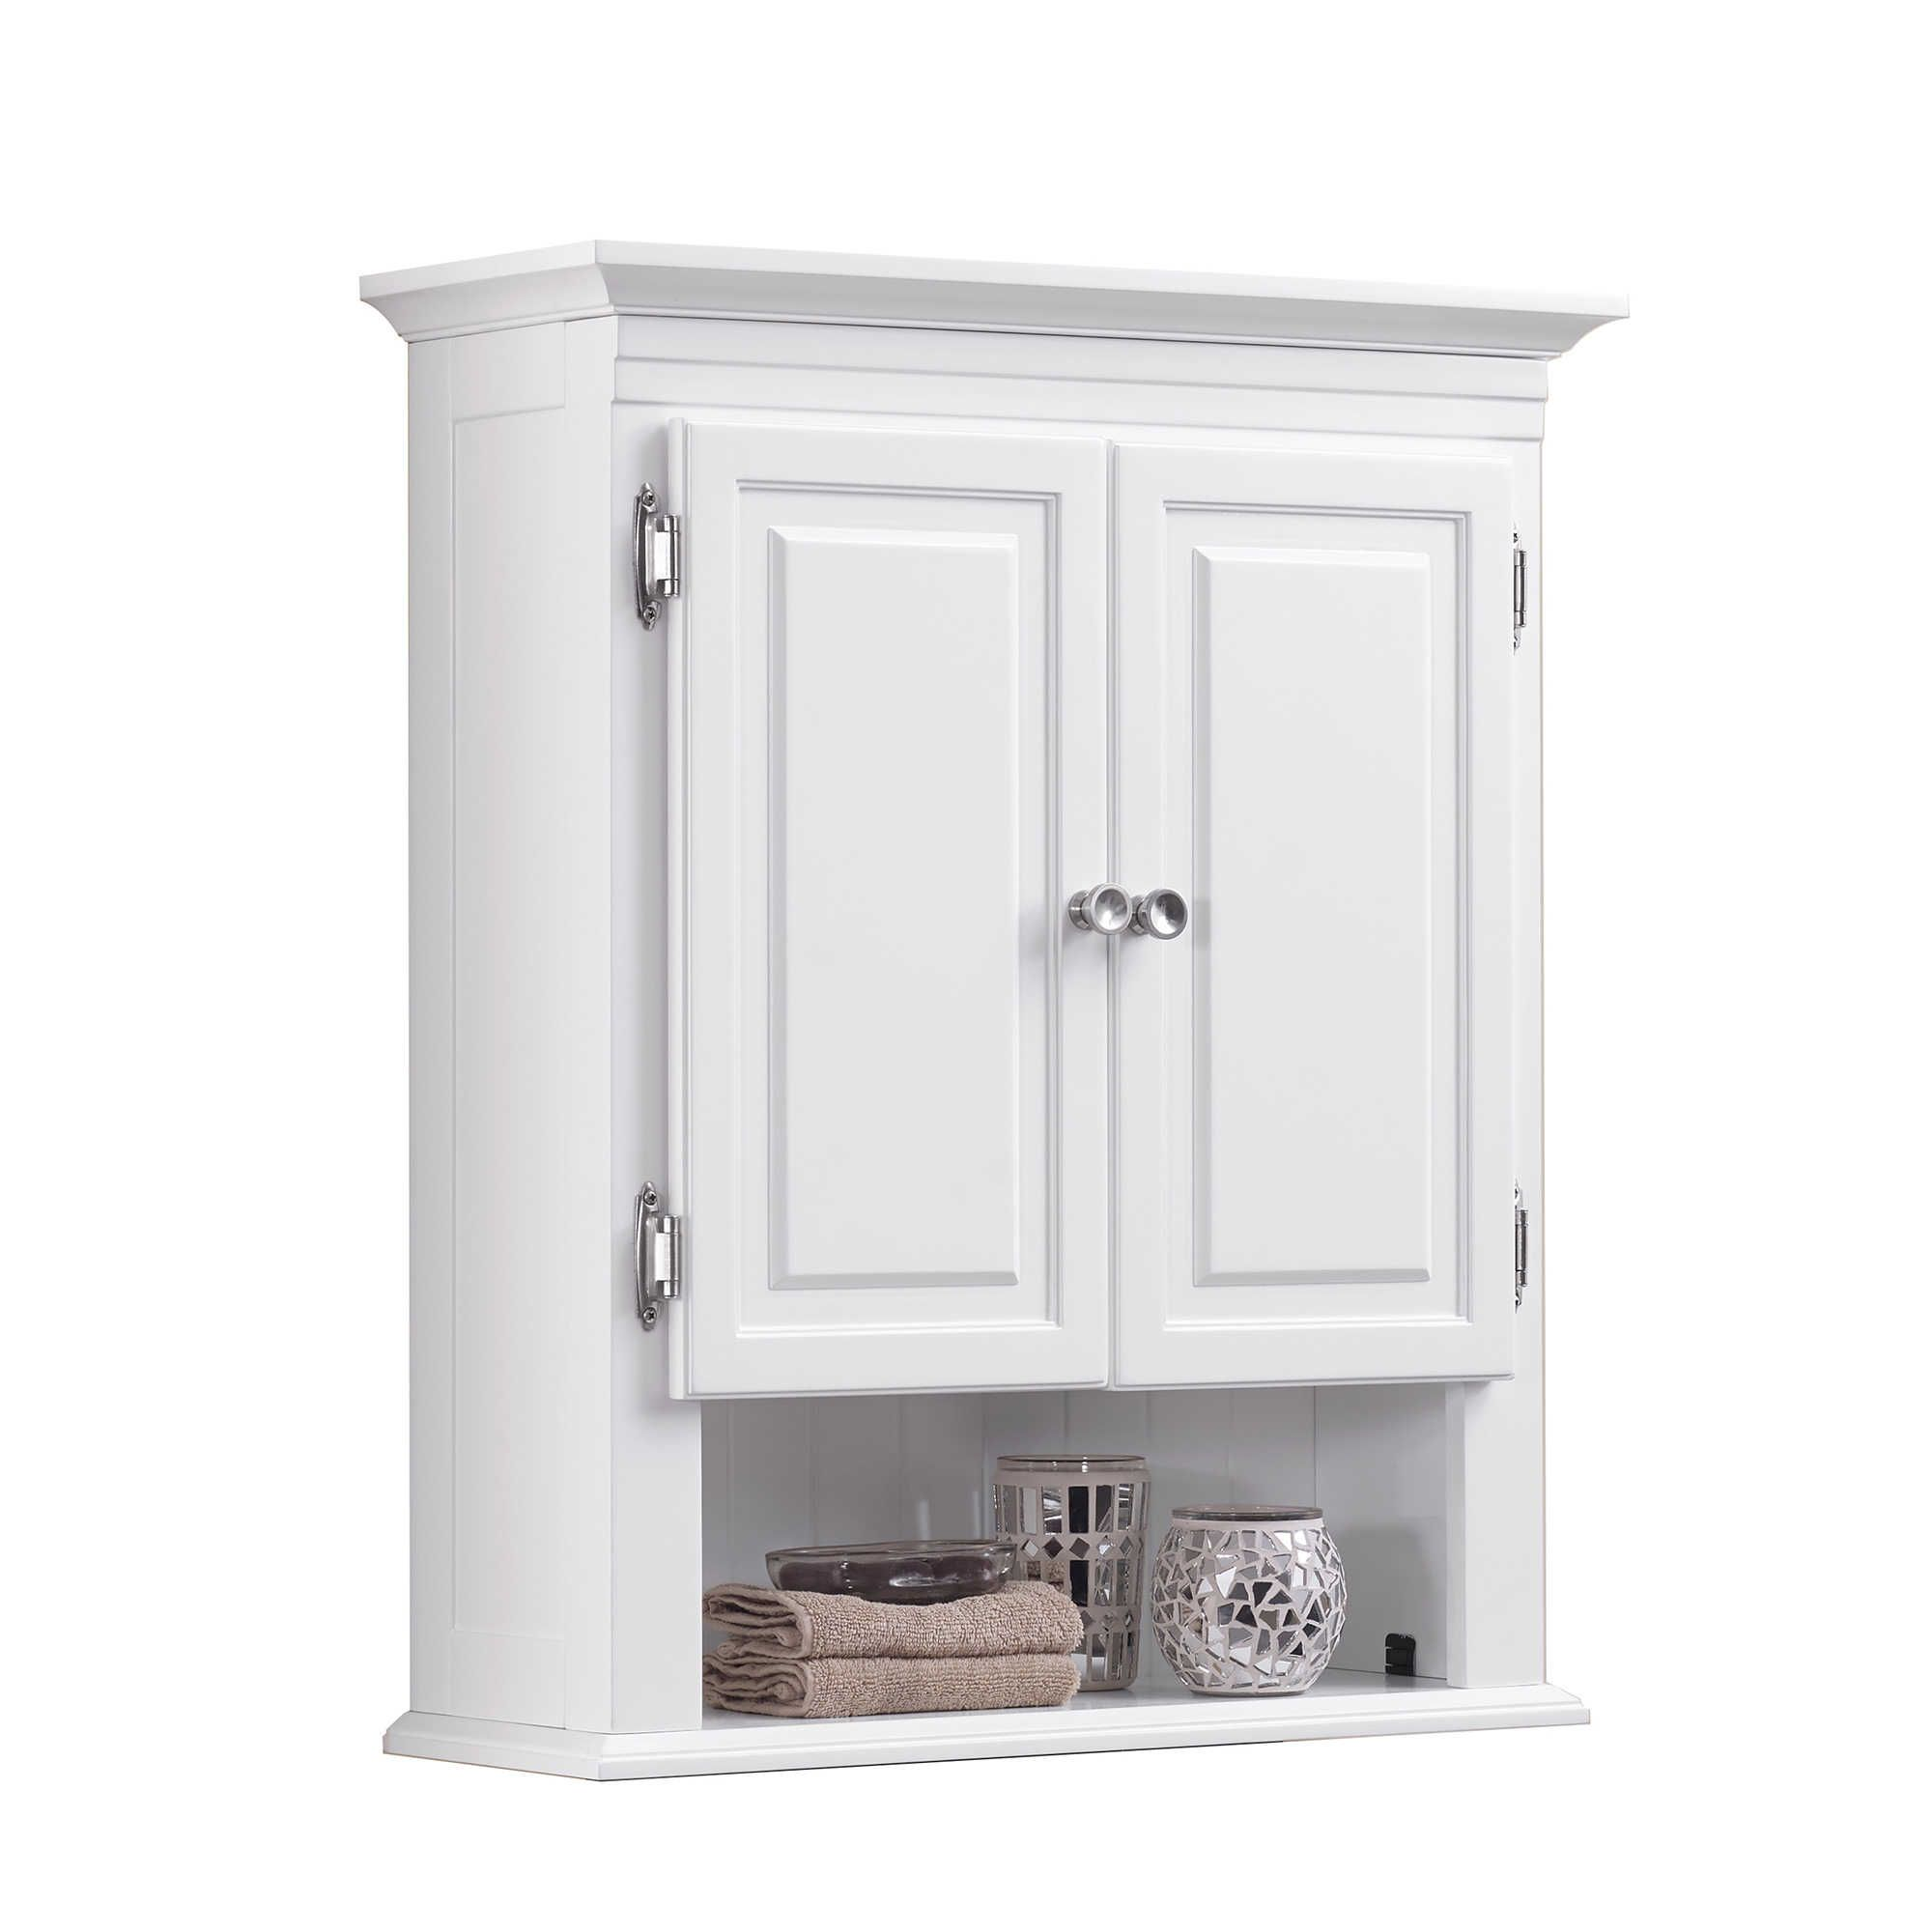 Wakefield Wall Cabinet | Wish List for the New House | Pinterest ...